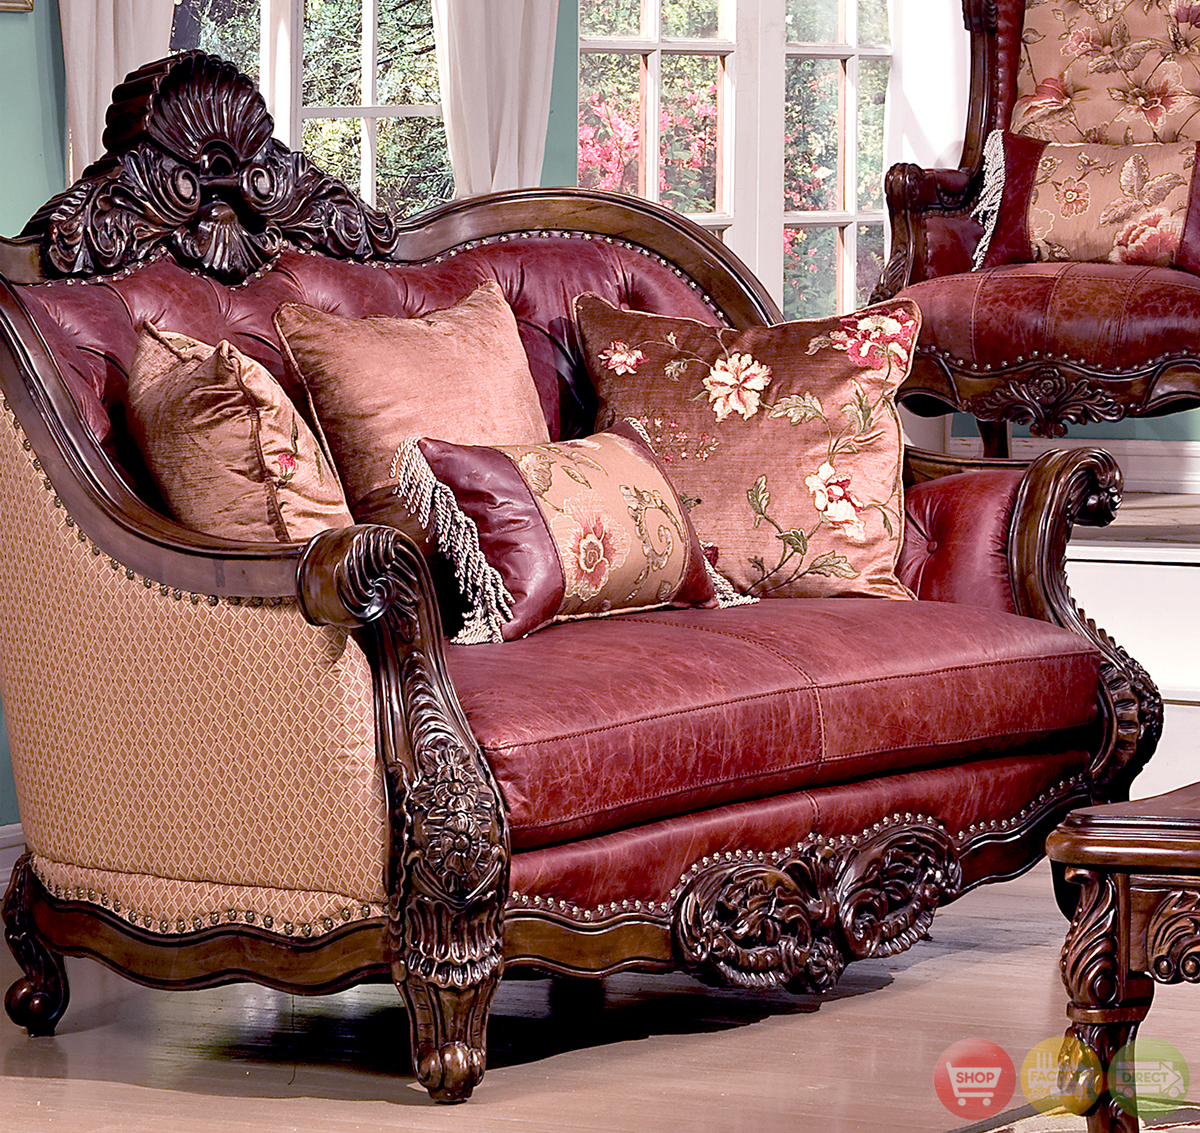 sofa set hd picture double bed couch traditional luxury leather formal living room 3311